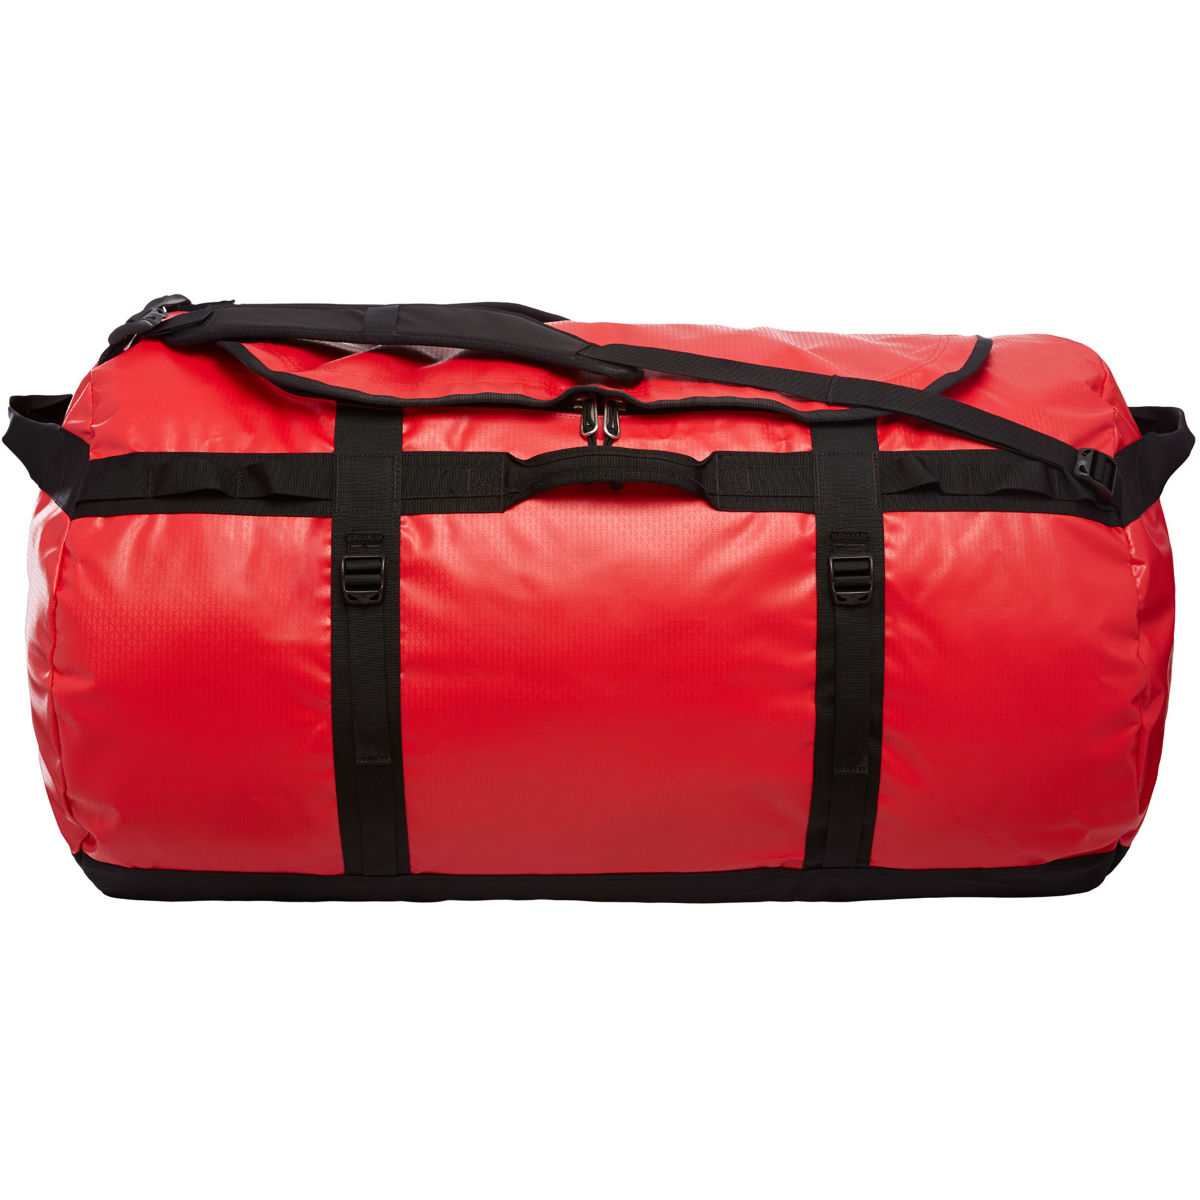 The North Face Base Camp Duffel (Extra Extra Large) - Bolsas de viaje